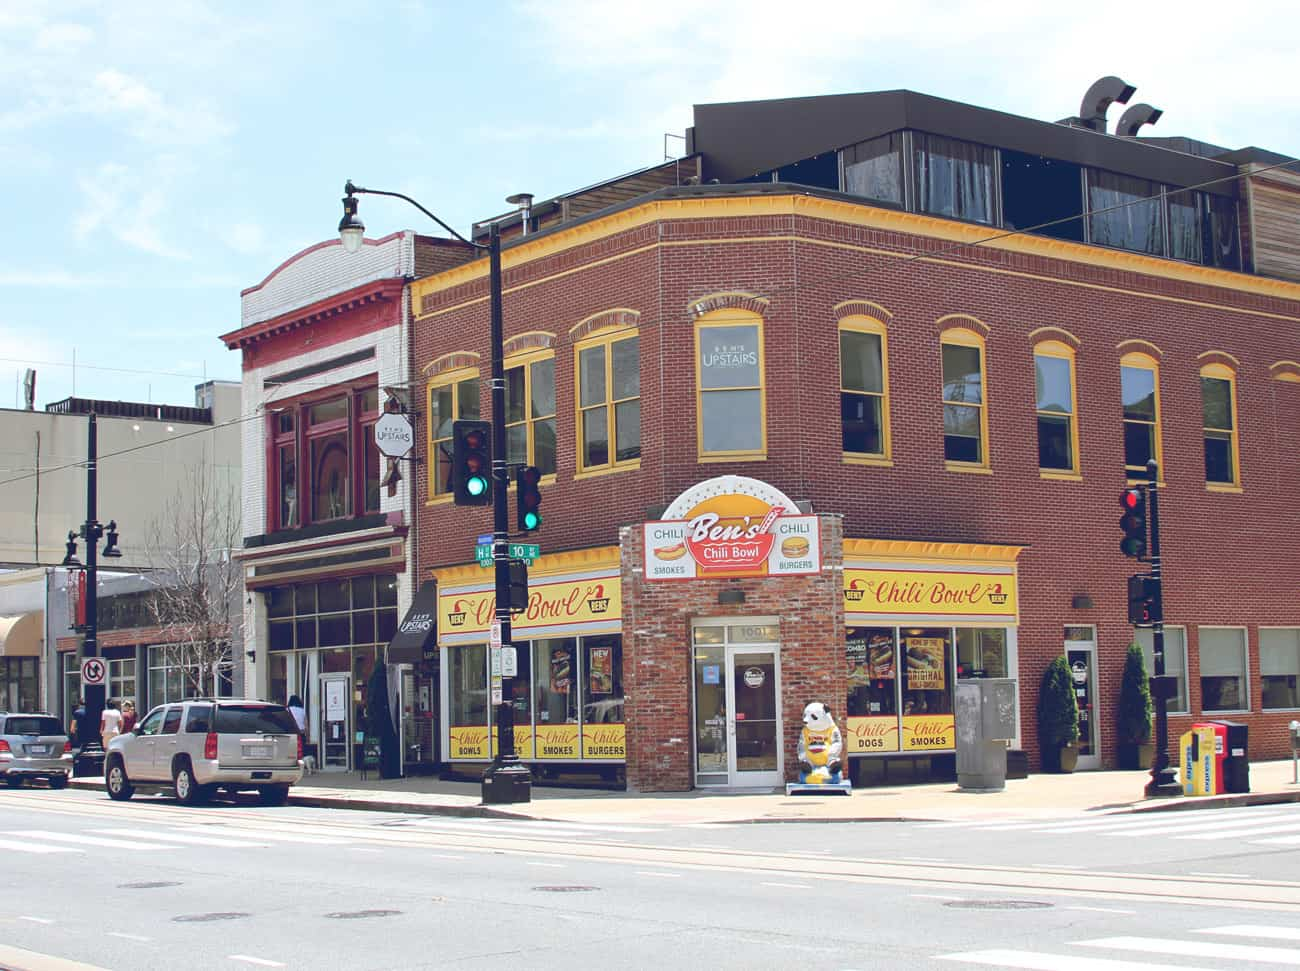 H Street storefronts